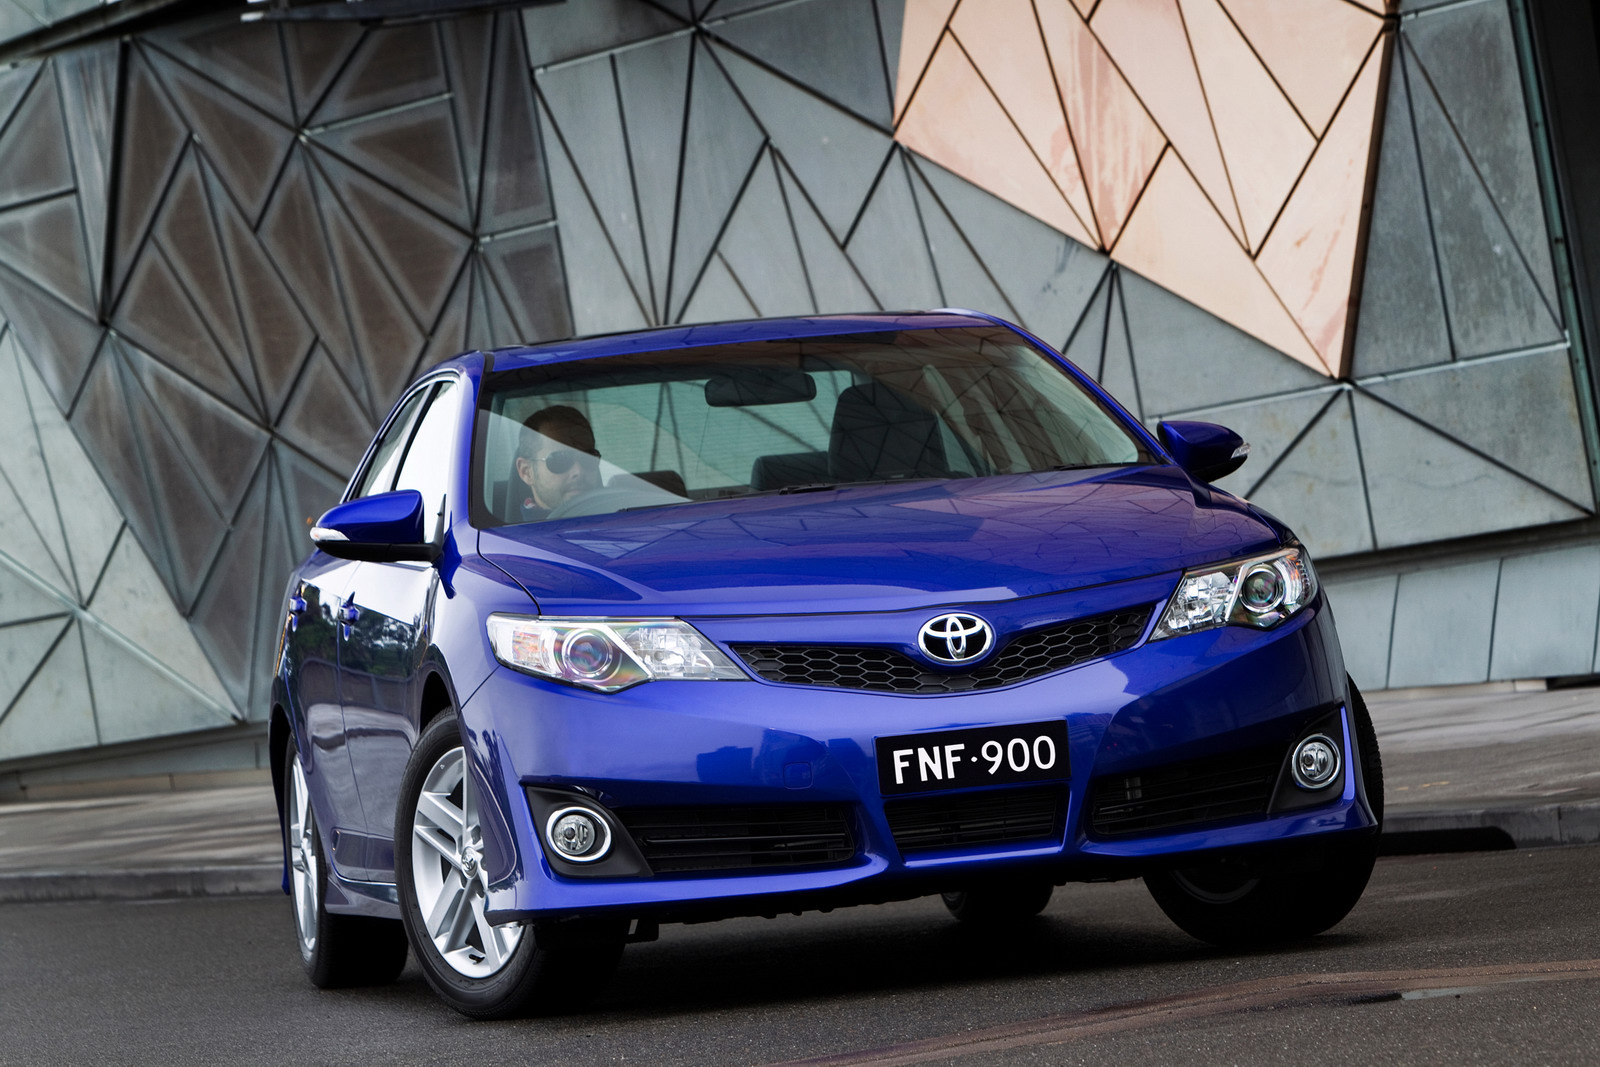 brand new toyota camry price in australia spesifikasi all kijang innova 2014 2012 for unveiled autoevolution